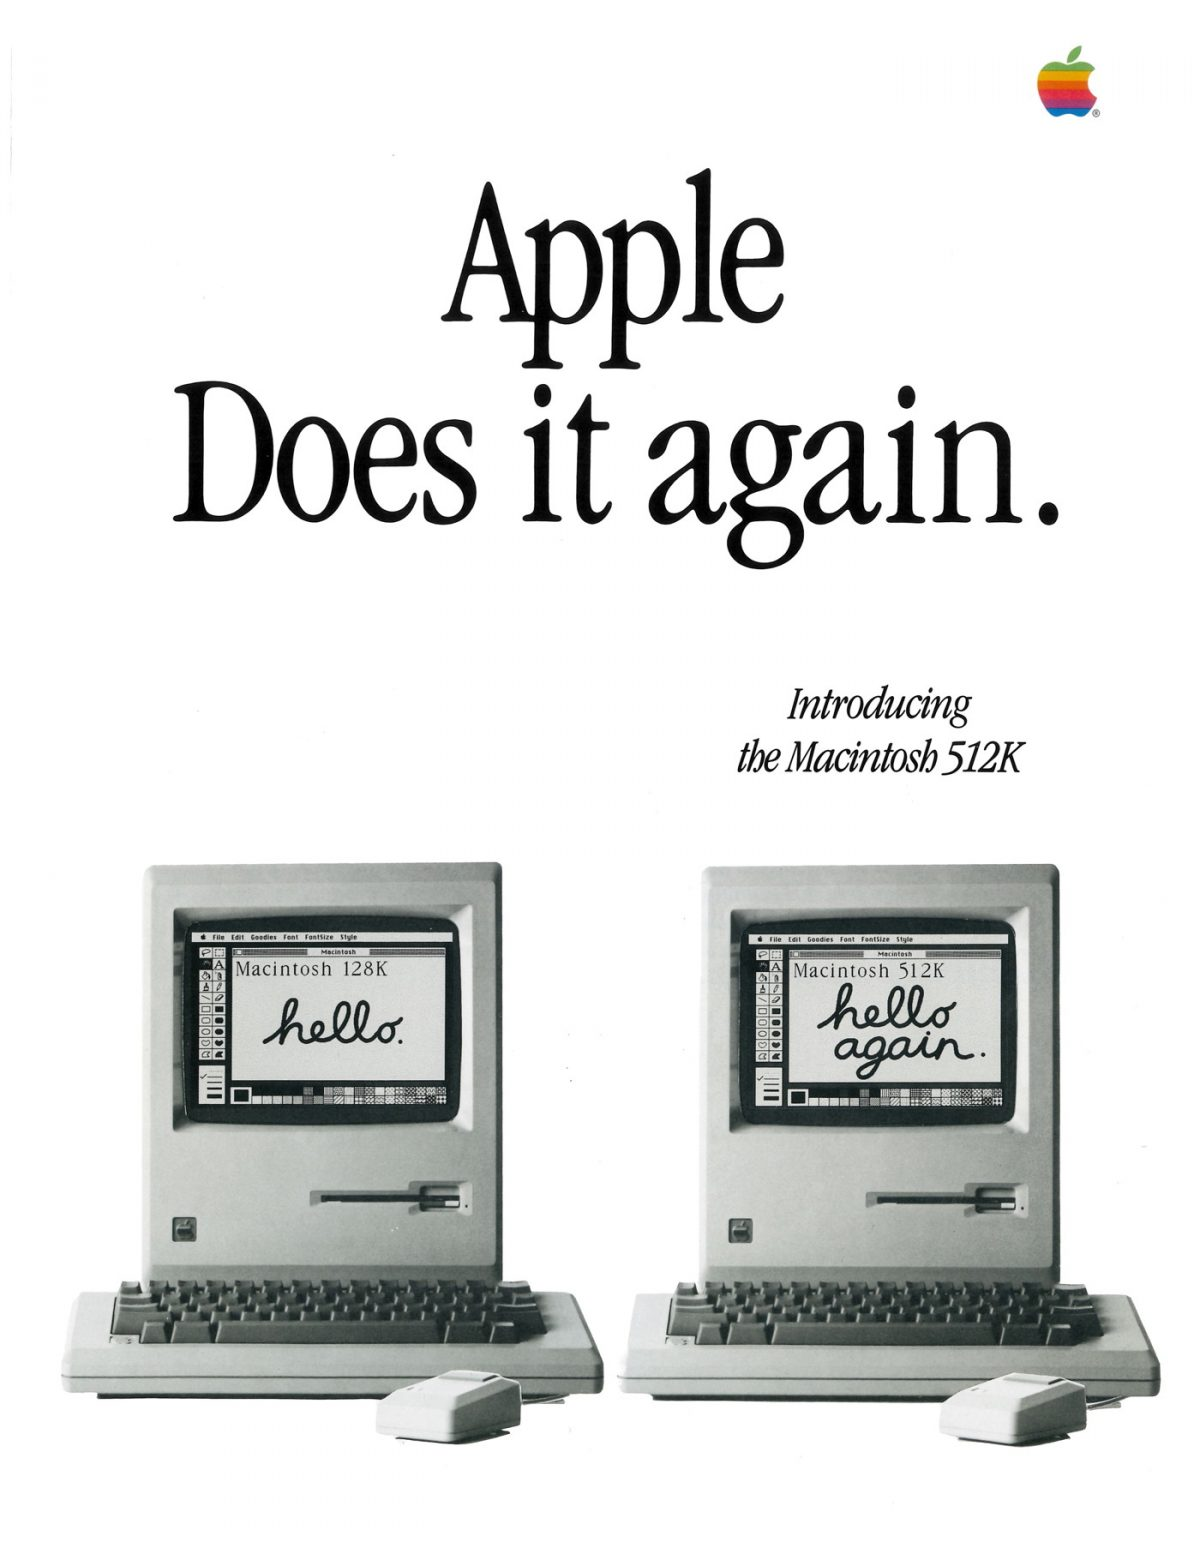 Apple does it again (Hello again Macintosh 512K)